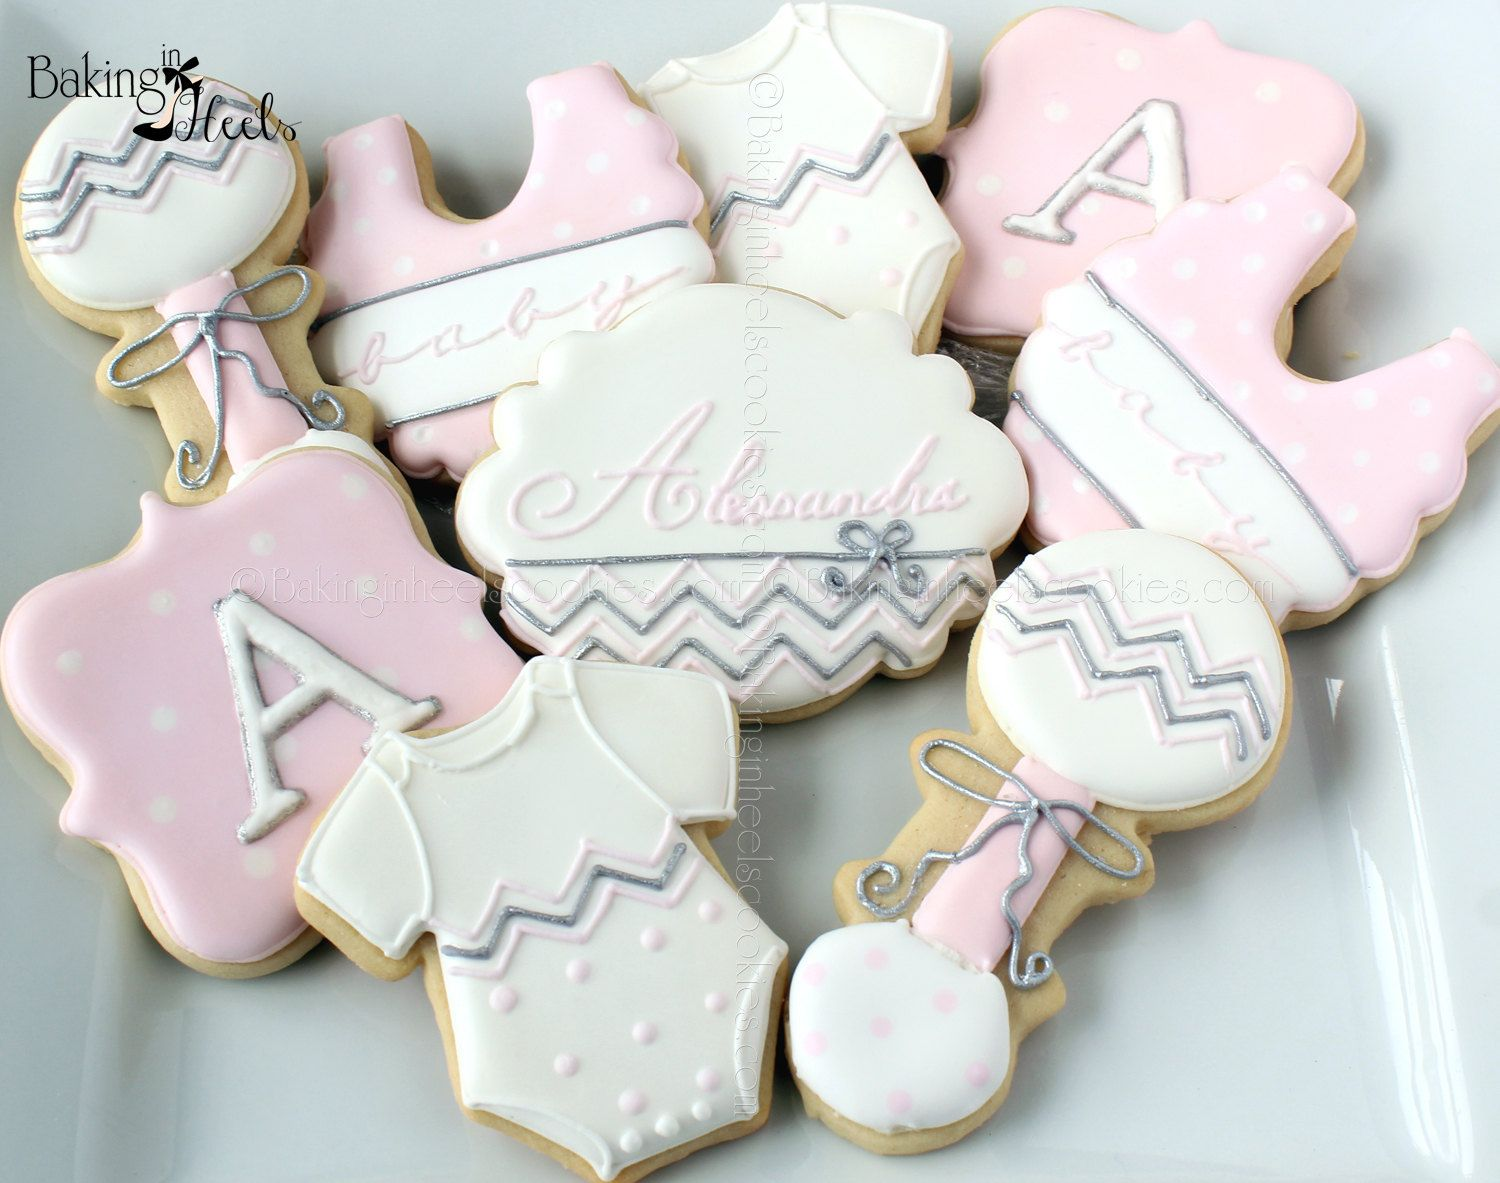 Chevron Baby Shower Cookies, It's A Girl Decorated Cookies, Baby Bib Cookies, Baby Rattle Cookies, Polka Dot Cookies, Baby Shower Cookies by Bakinginheels on Etsy https://www.etsy.com/listing/204775683/chevron-baby-shower-cookies-its-a-girl